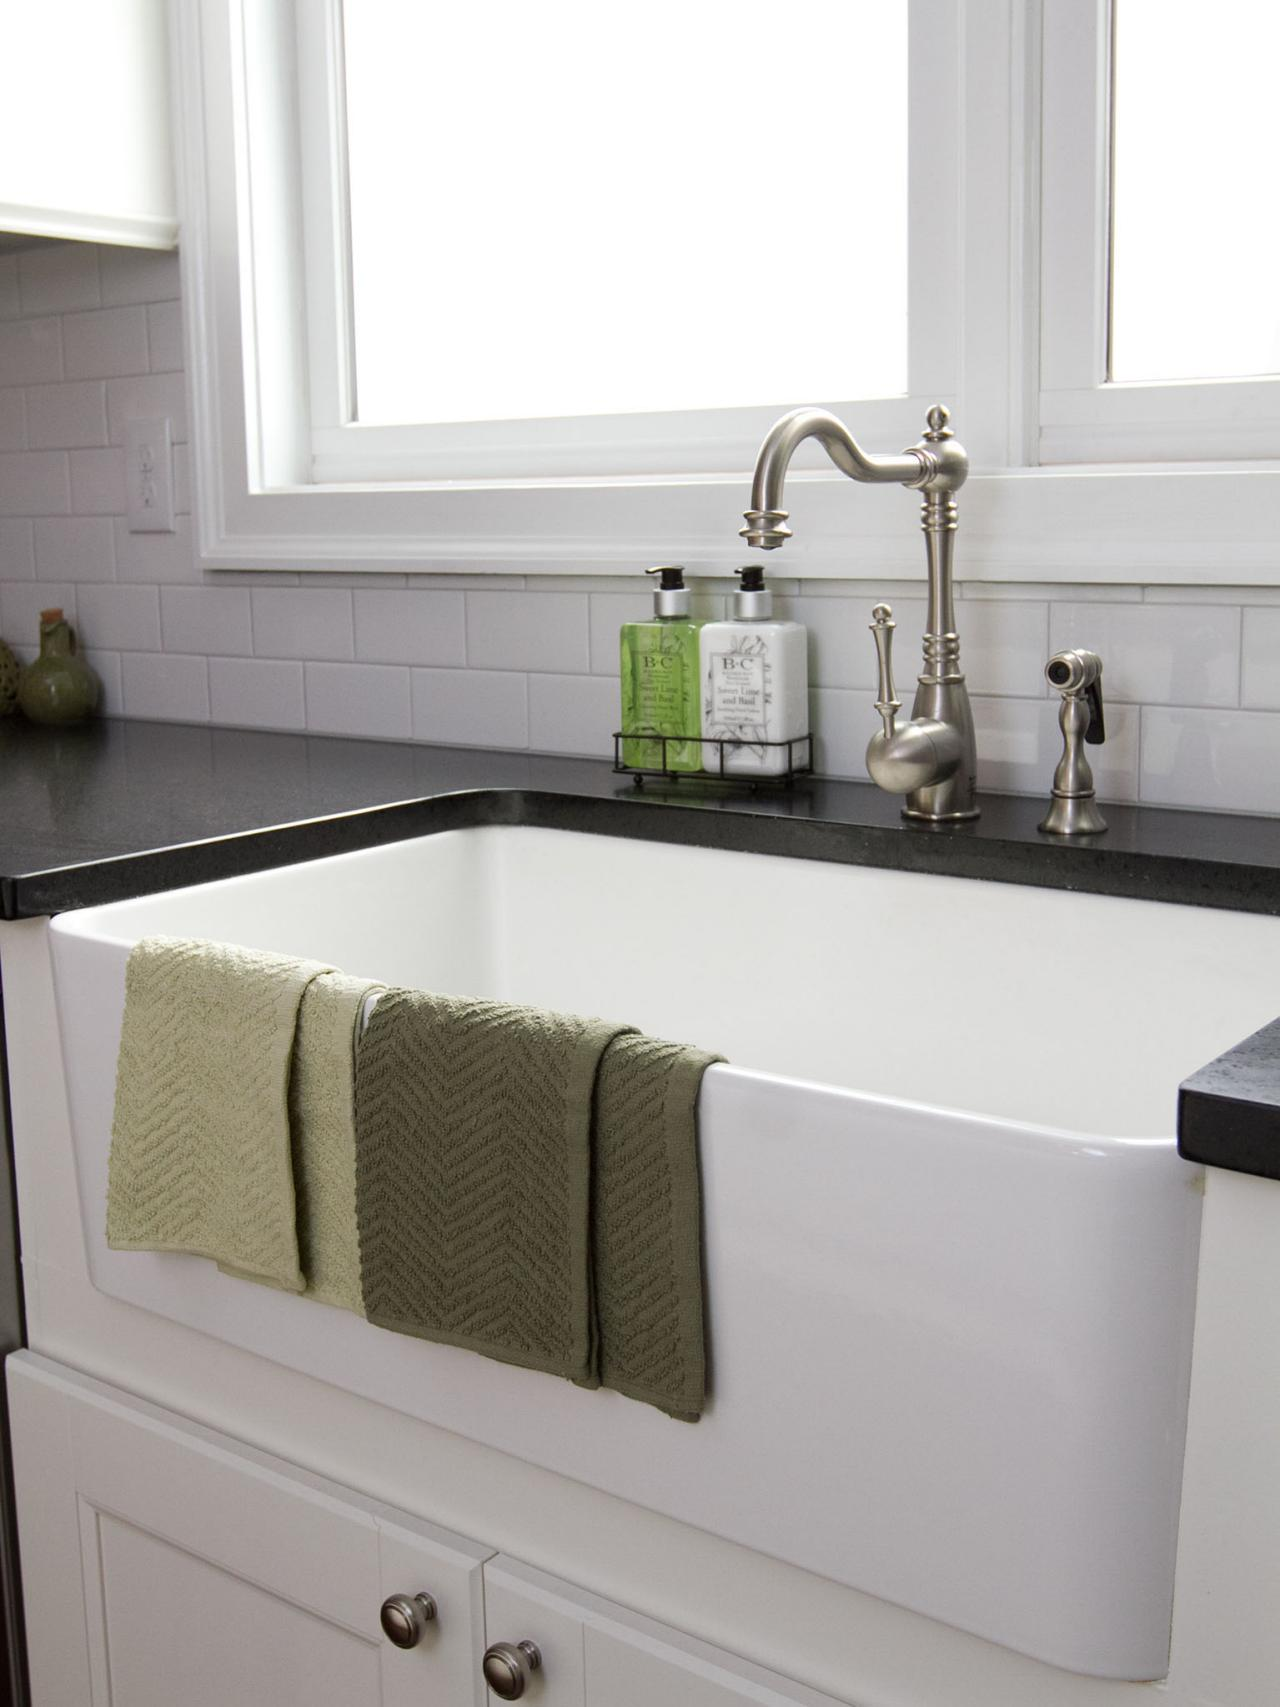 White Subway Tile Farmhouse Kitchen Sink